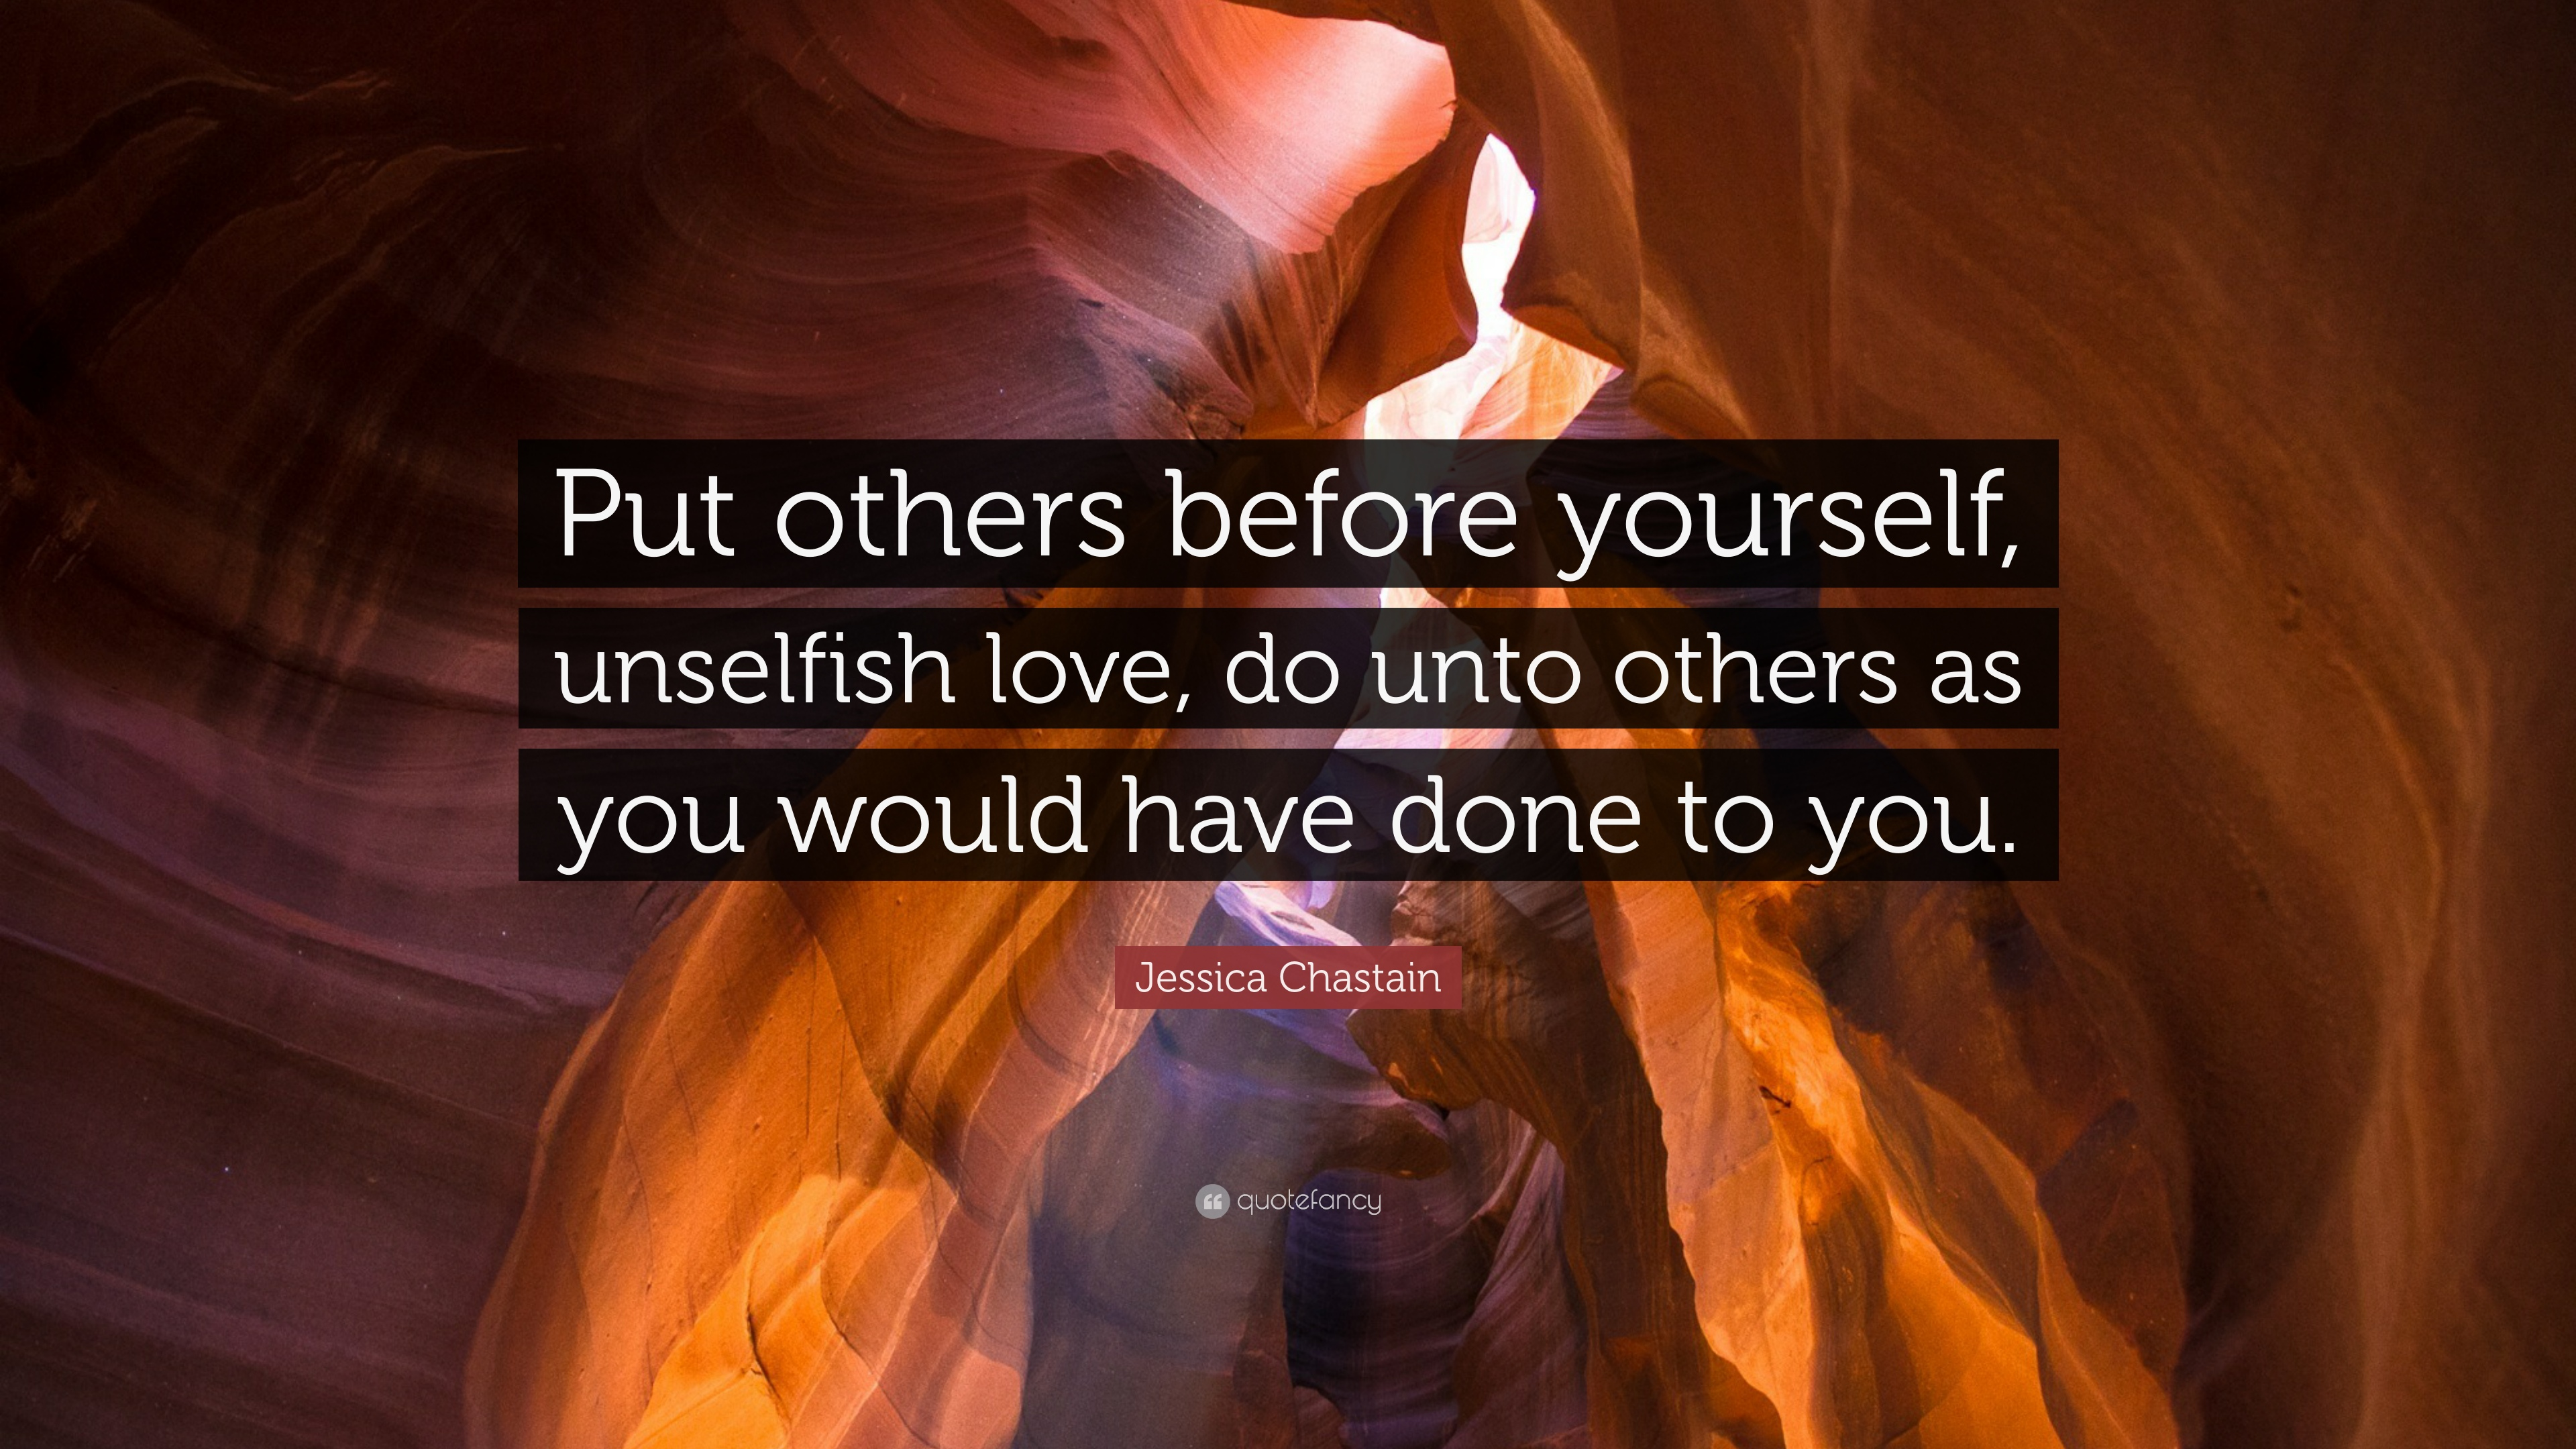 essay on do unto yourself as you do unto others Do unto others as you would have them do unto you, unless their is a good reason not to surprisingly, the eminent philosopher karl popper actually put this rather well the golden rule is.